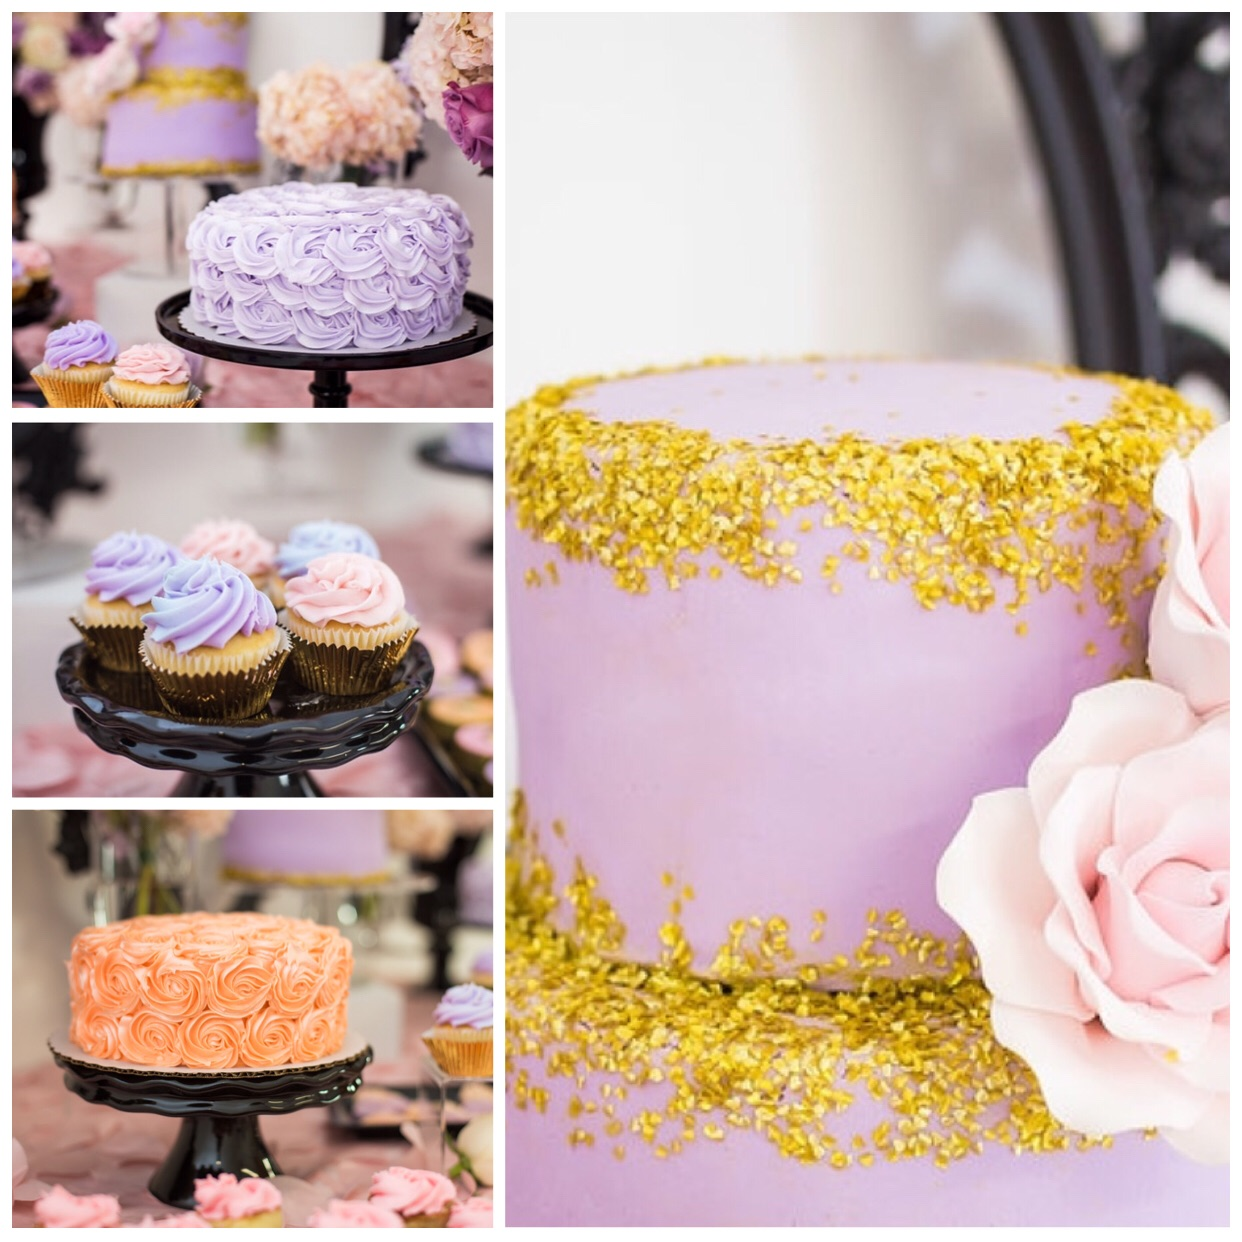 Two tiered cake by Yulissa's Creations